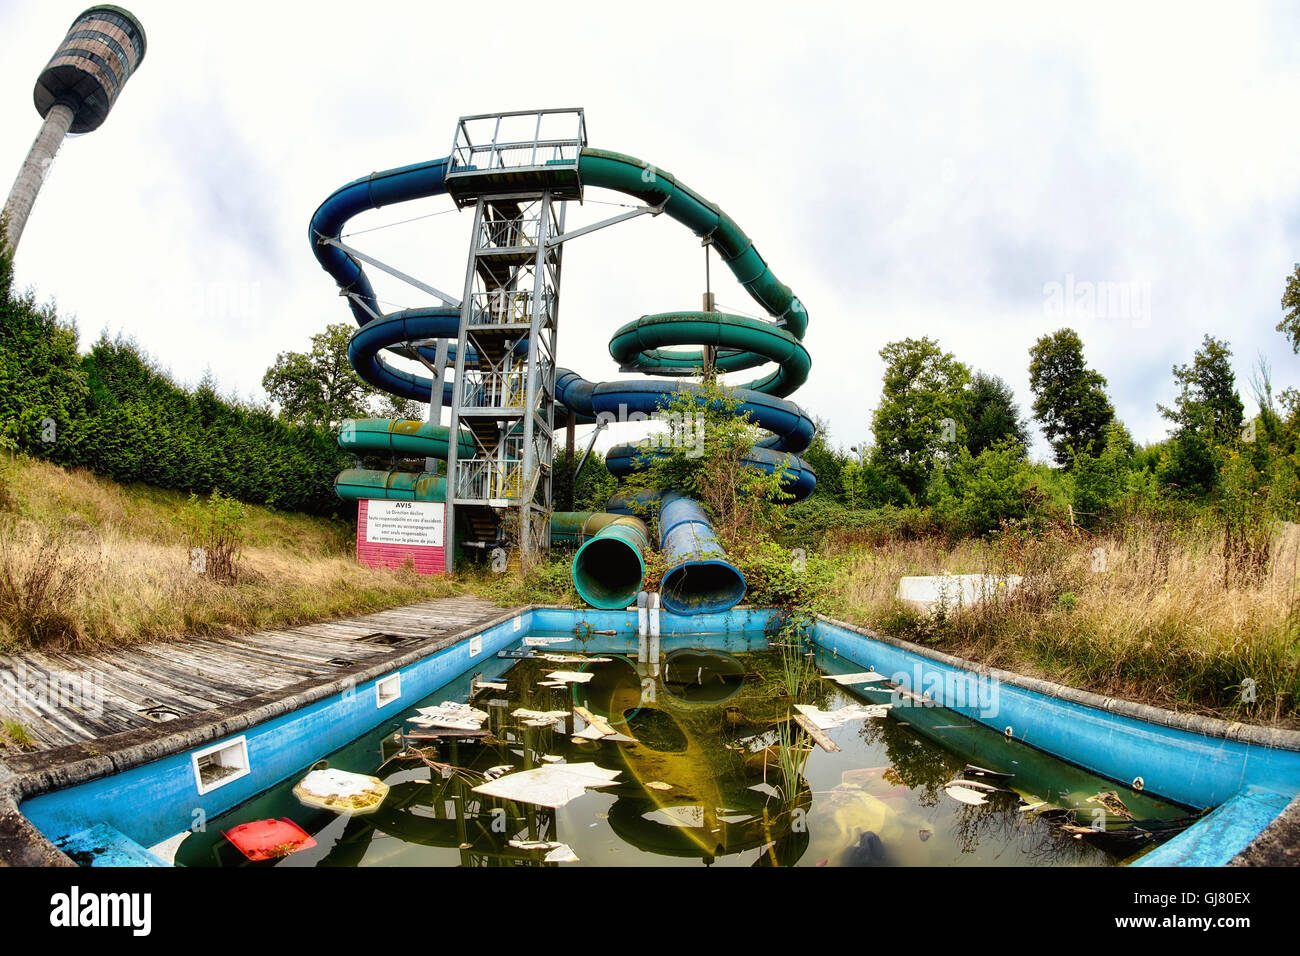 Abandoned Outdoor Swimming Pool With Slides Stock Photo Alamy